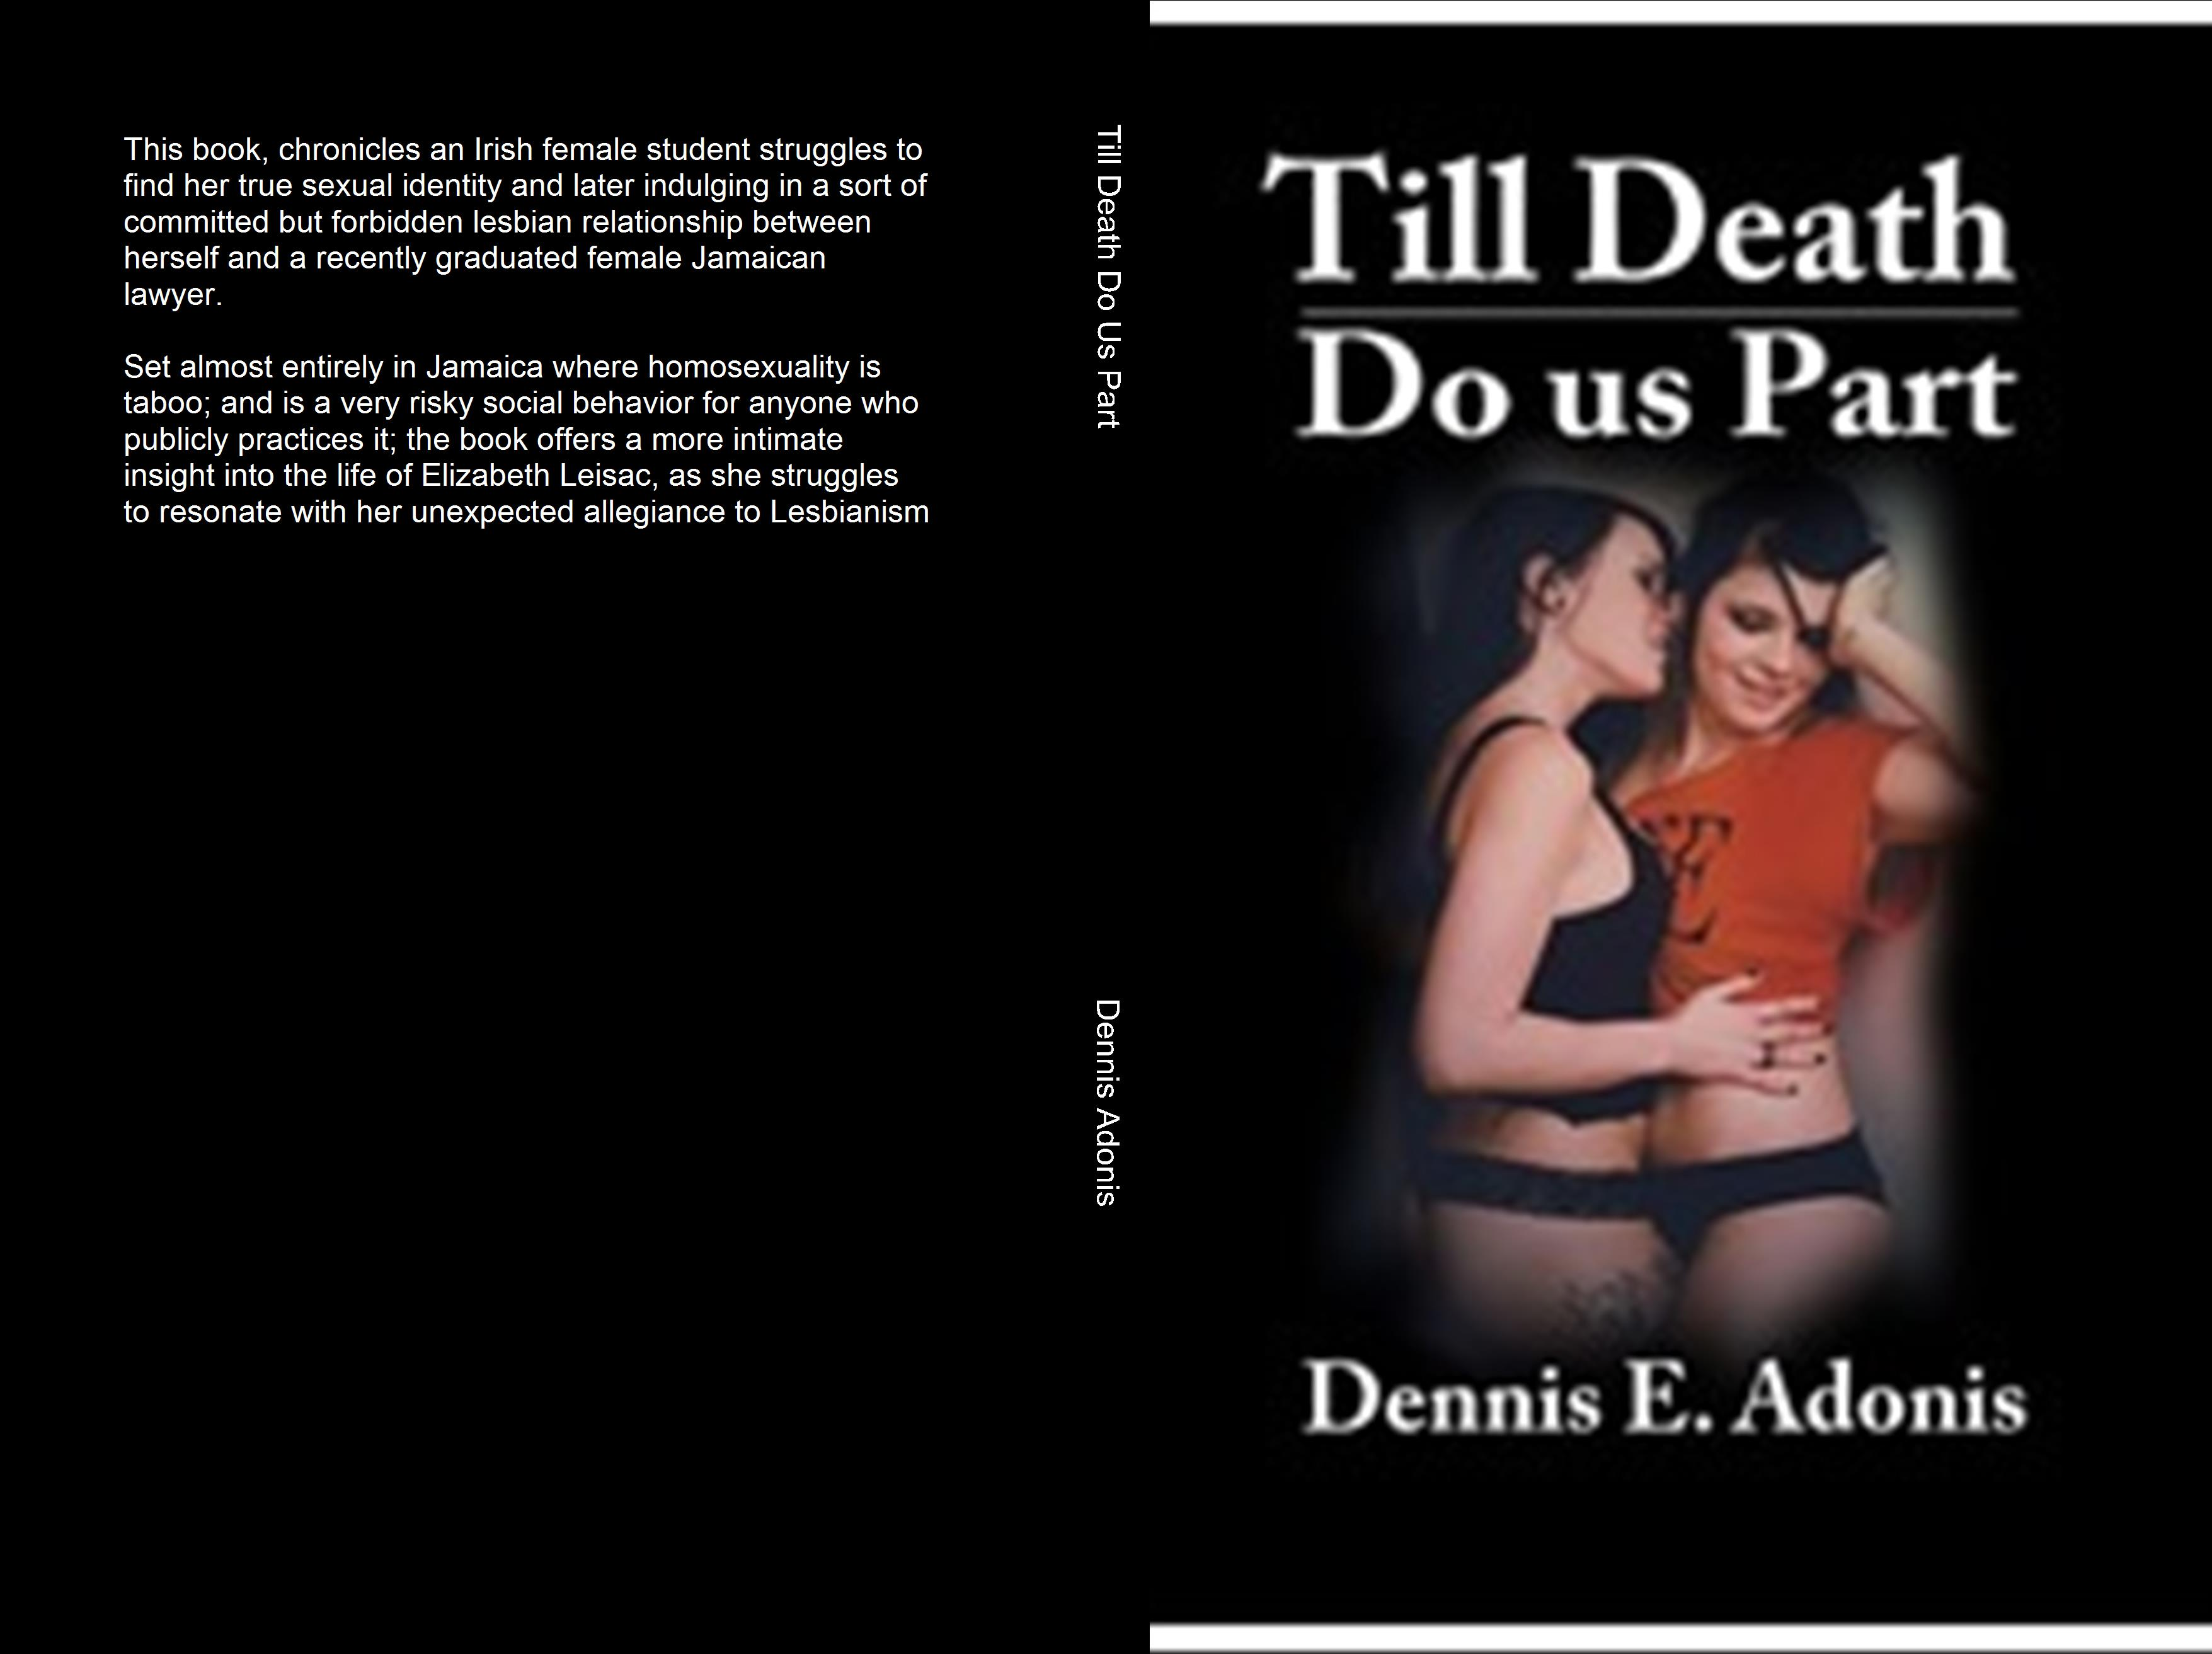 Till Death Do Us Part cover image